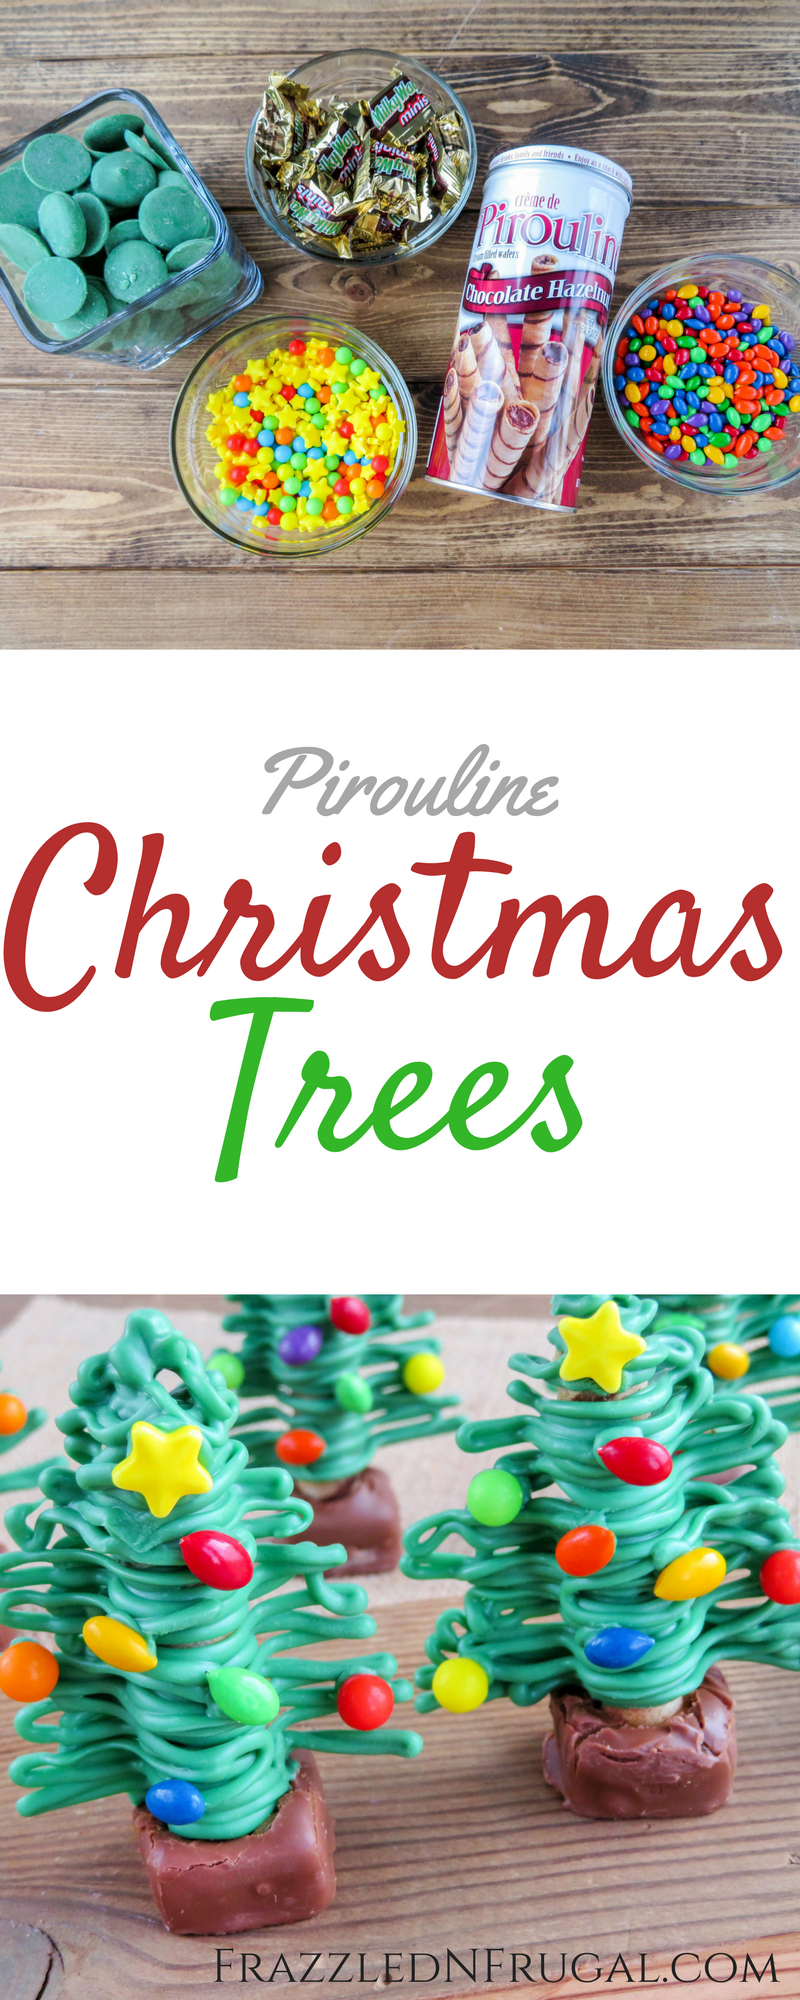 Pirouline Christmas Trees